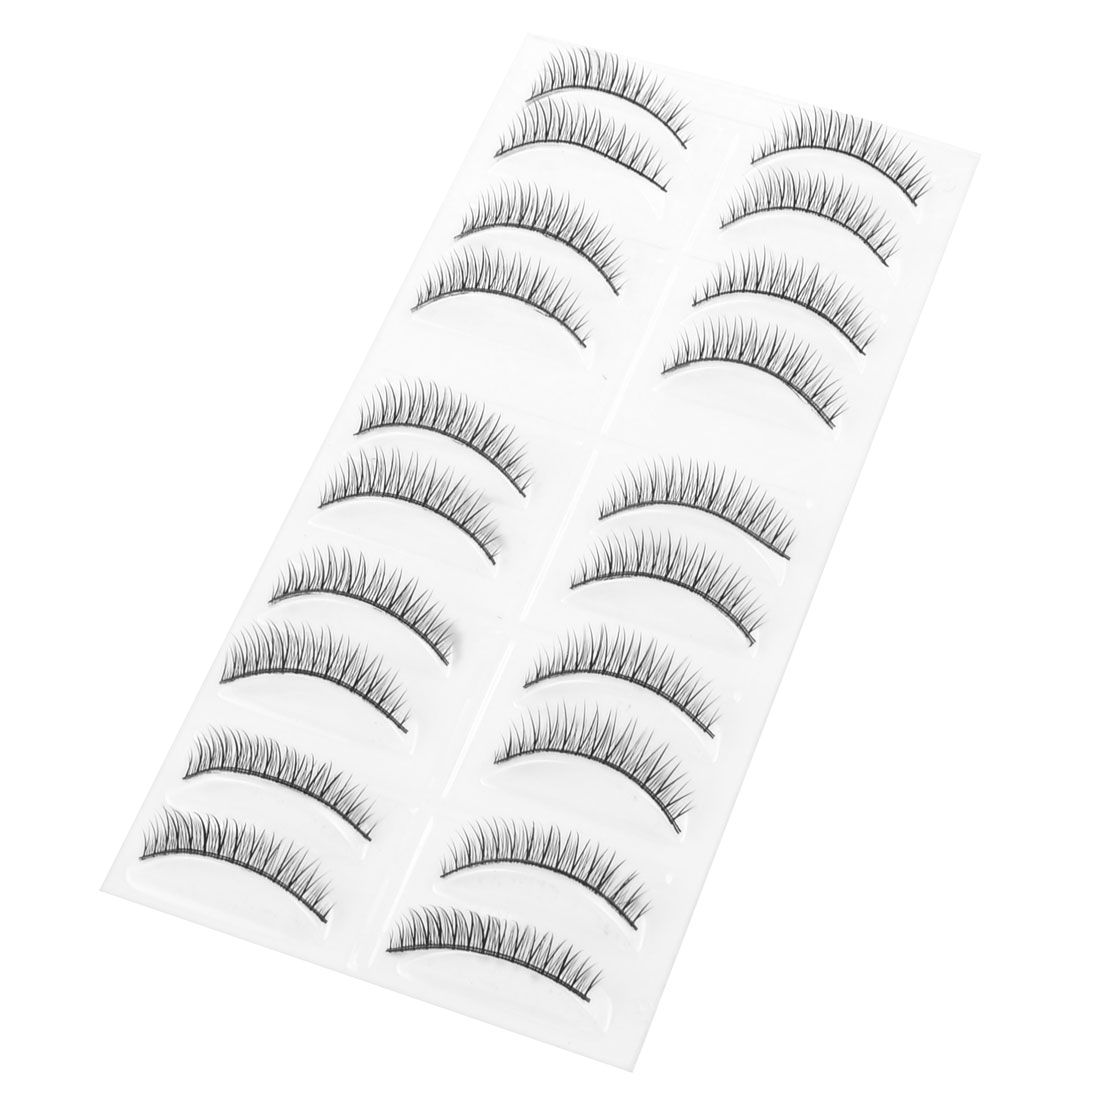 Girl Eye Beauty Make up Long Curly Natural Lashes False Eyelashes Black 20 in 1